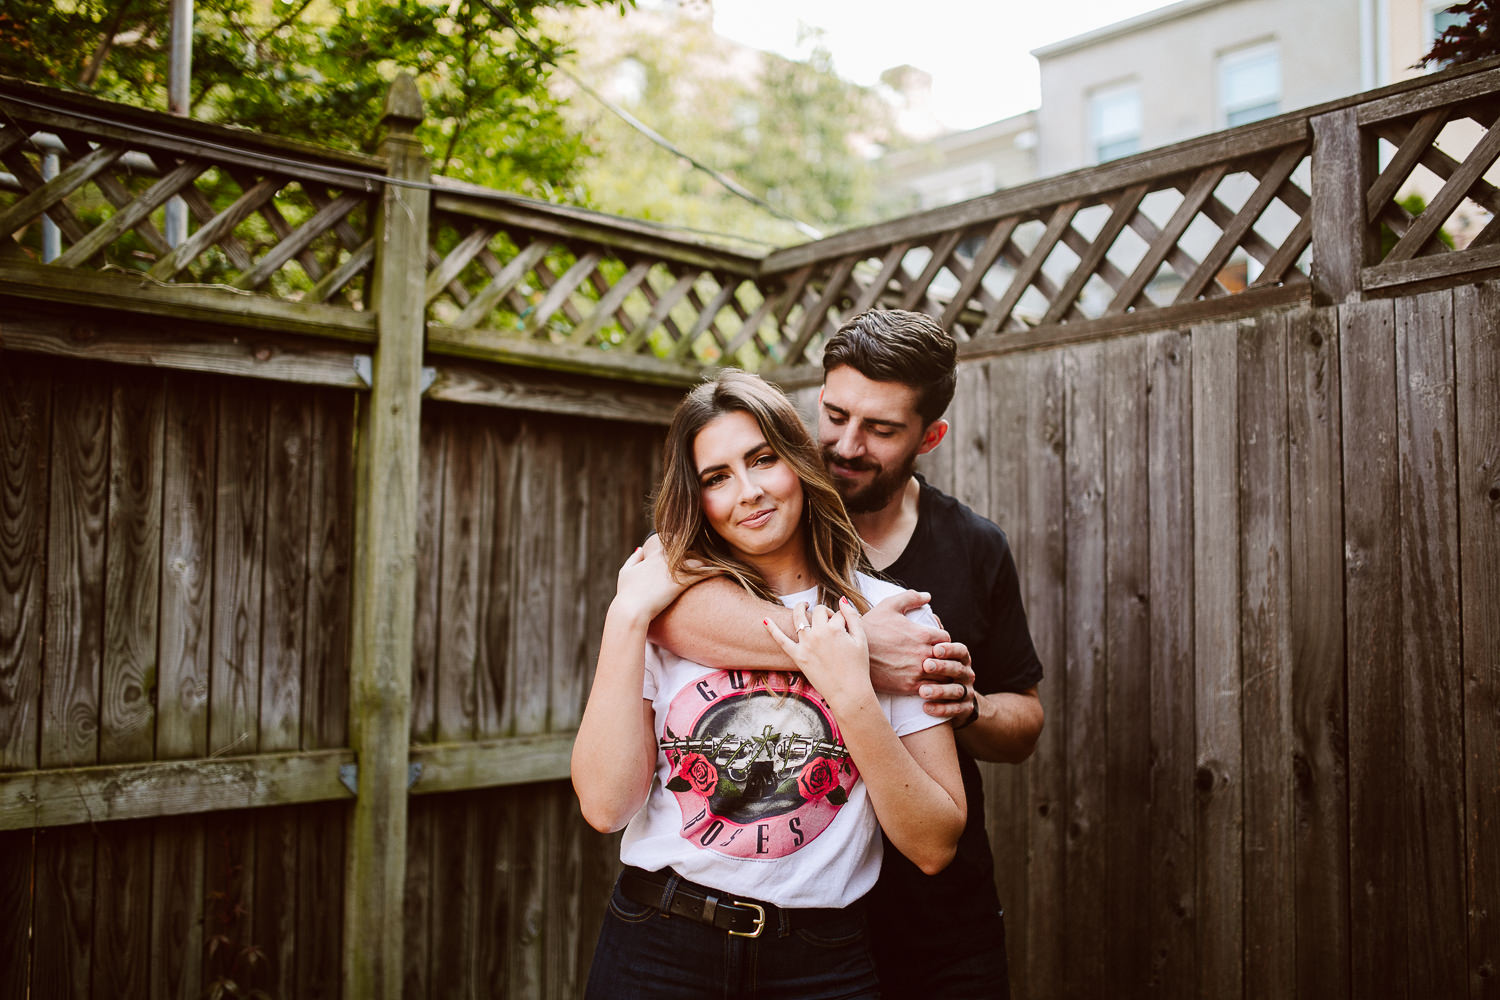 washington dc engagement shoot in blagden alley